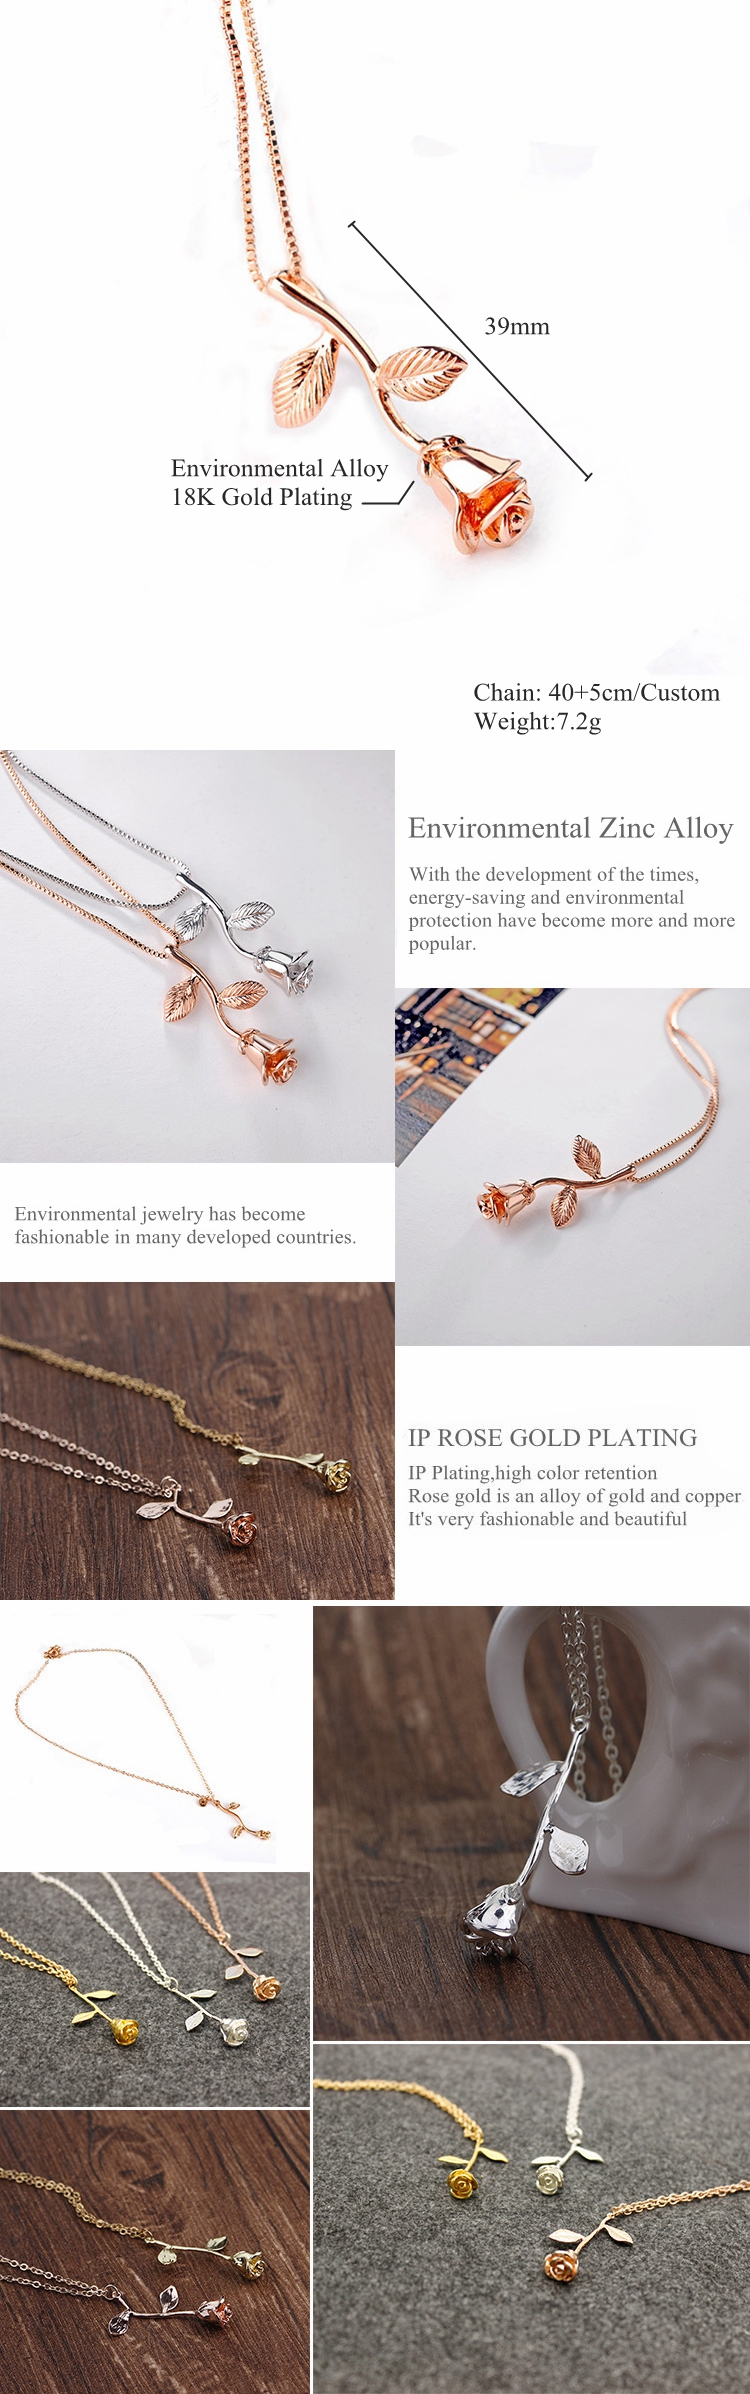 2019 New Arrival Fashion Jewelry Valentine Gift 18k Gold Plating Pendant Rose Necklace